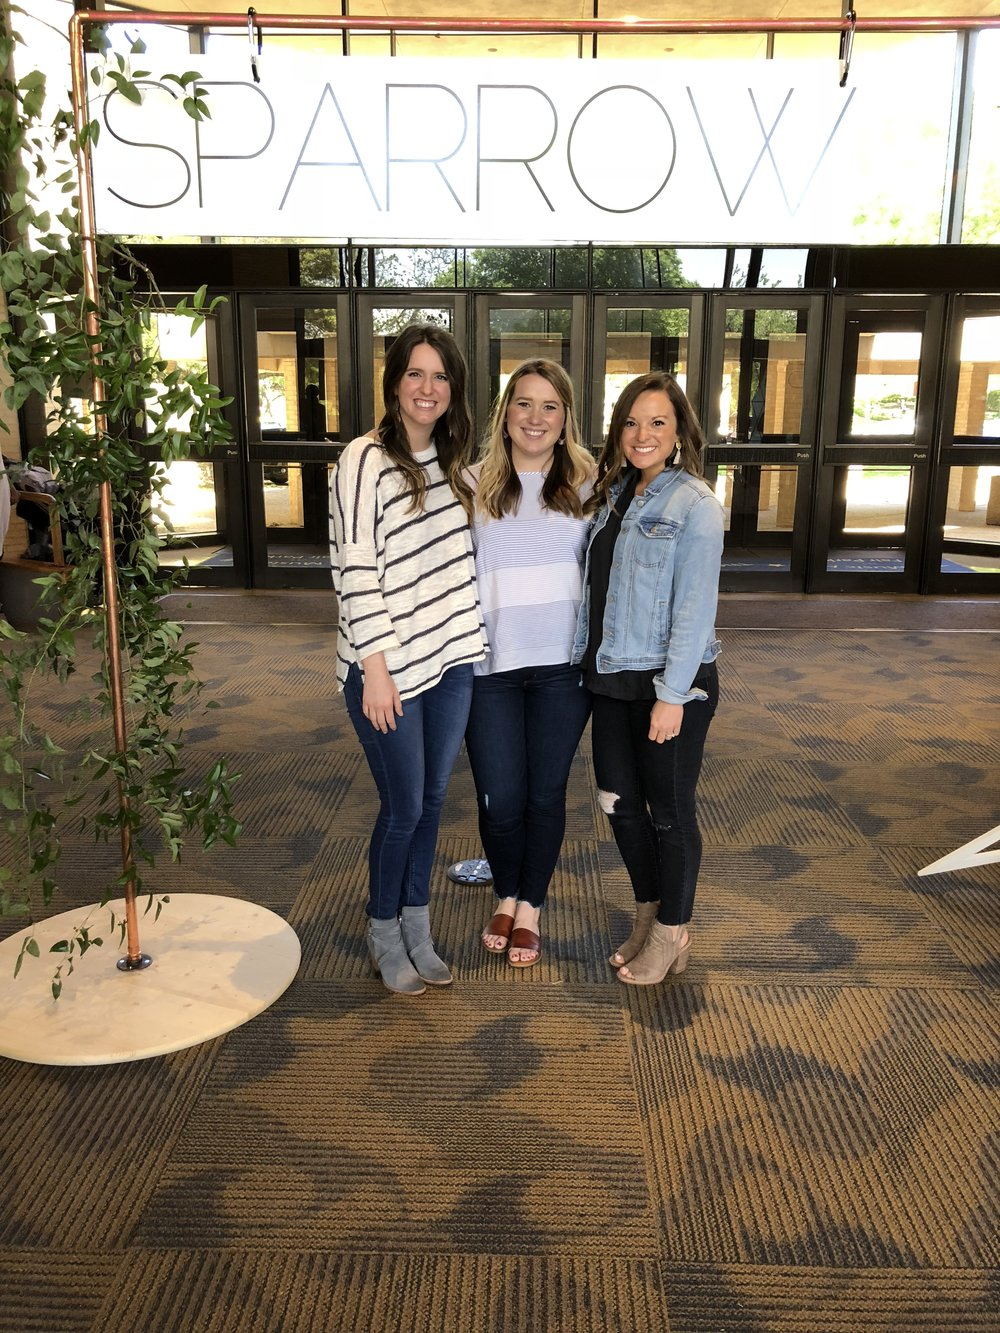 We attended Sparrow with our friend Erica who came from Fayetteville, Arkansas to join us and we are so glad she did!